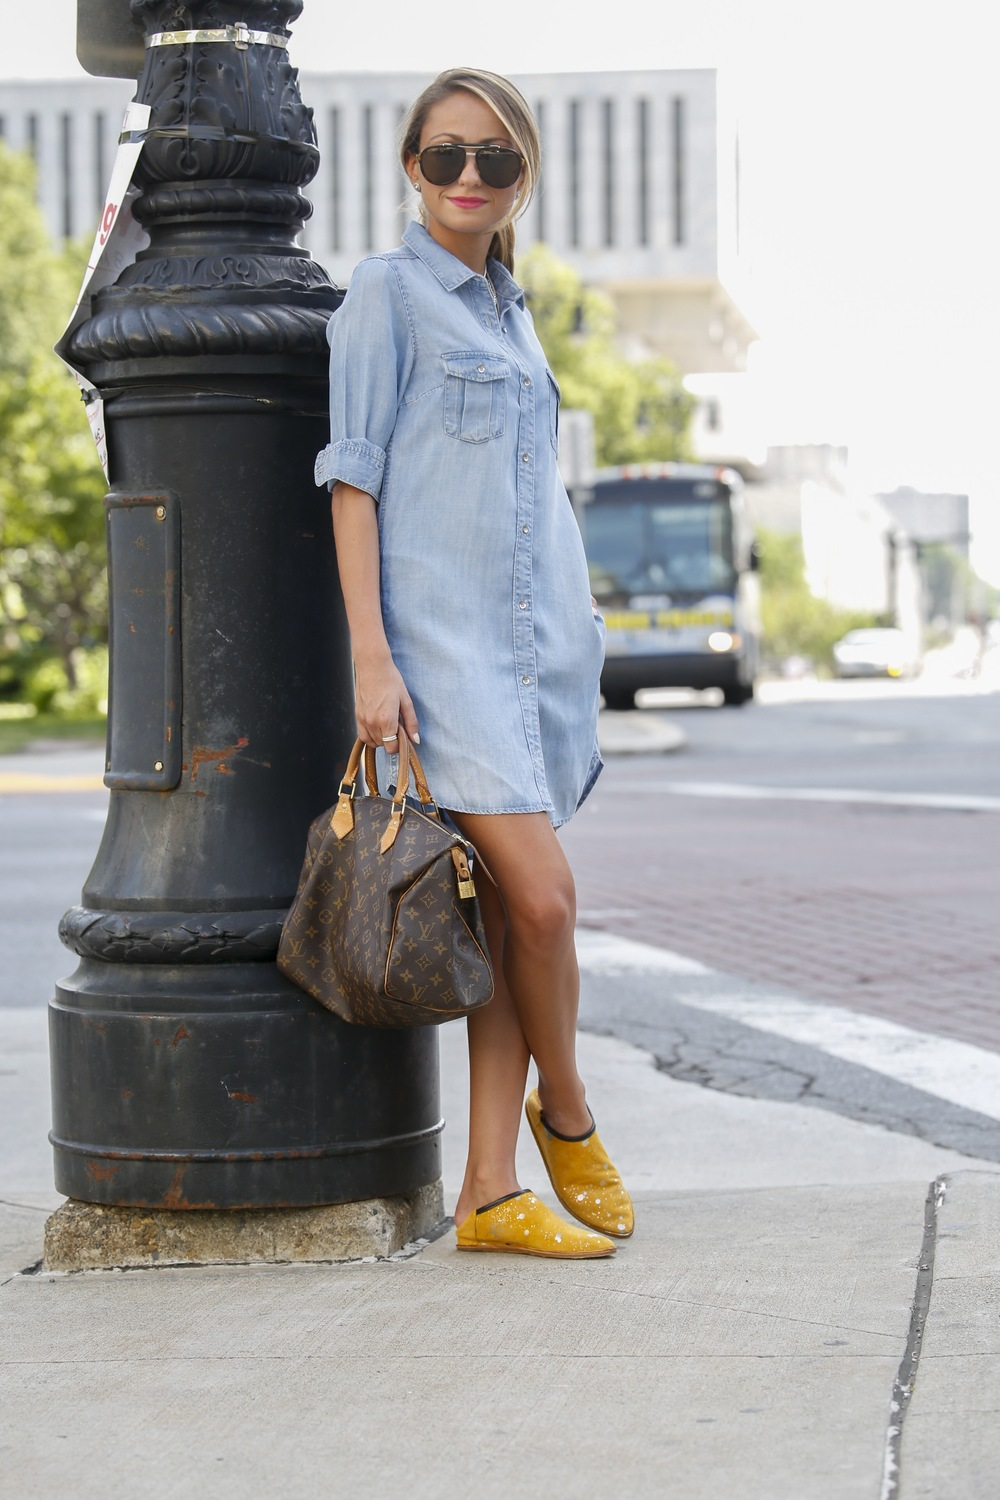 Fashion blogger north of manhattan seen wearing a chambray dress with Georgina Goodman slippers and Louis Vuitton speedy bag